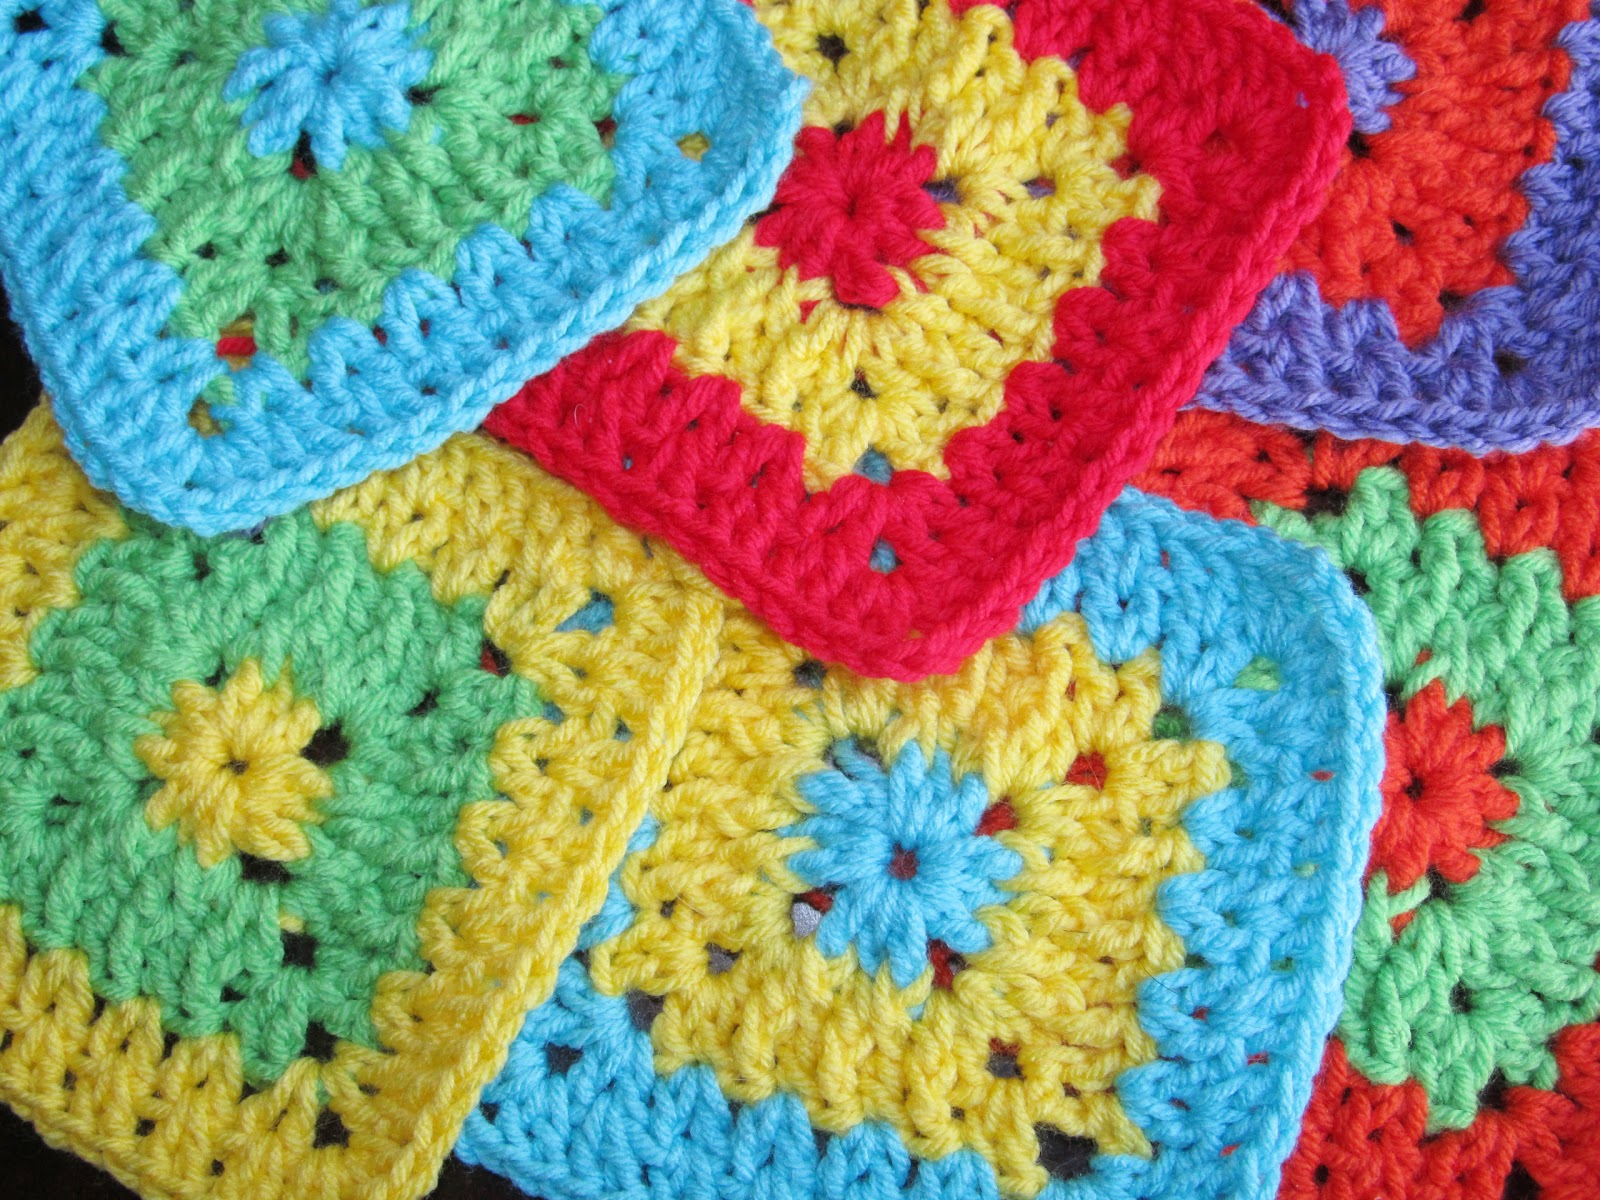 Free Crochet Easy Granny Square Patterns : SmoothFox Crochet and Knit: SmoothFox Cool 2B Square ...